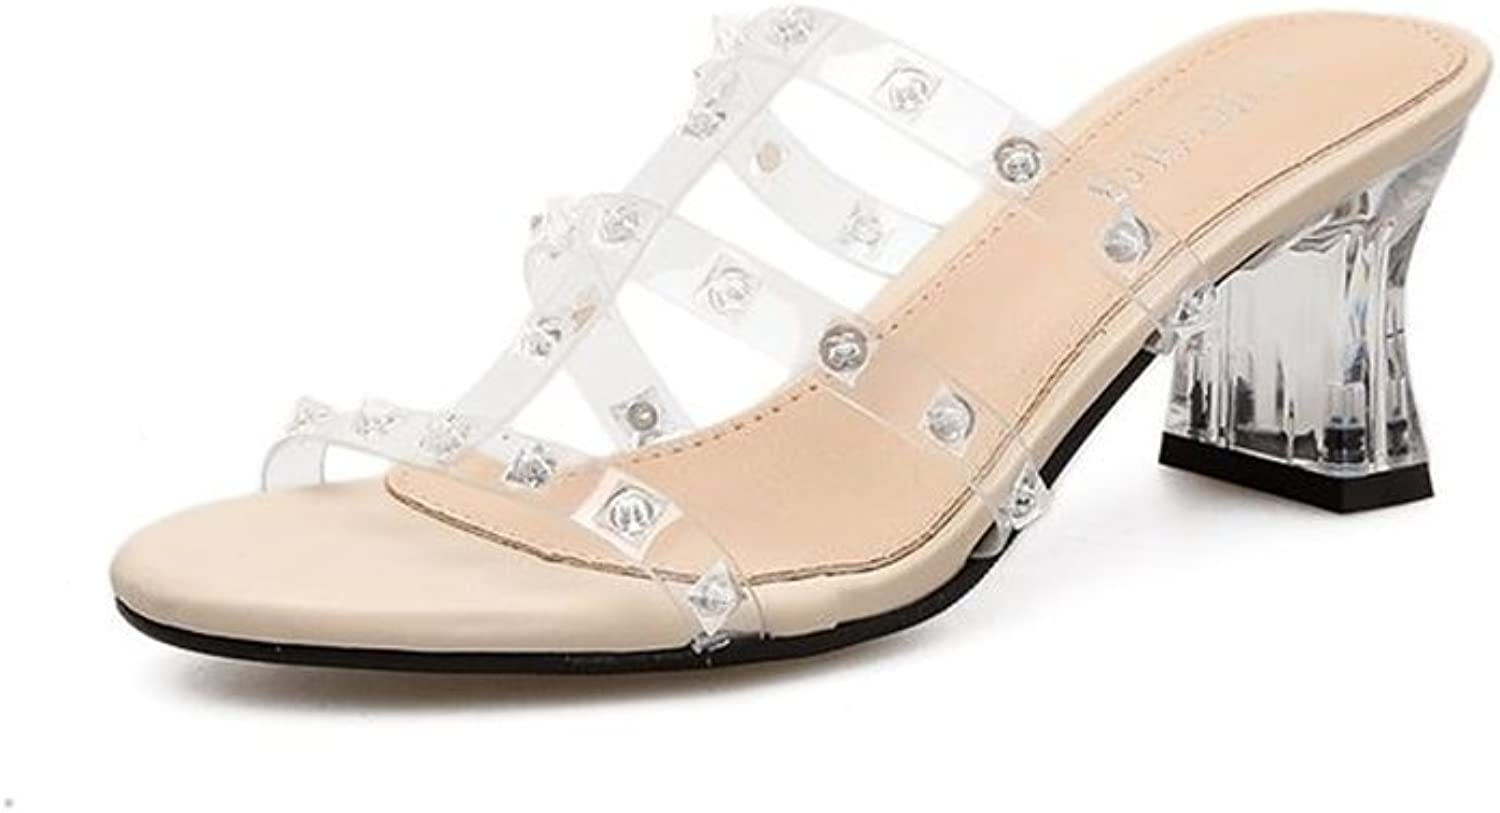 pink town Women's Retro Clear Sandals - Block High Heels Lace up - Slip on Mules shoes